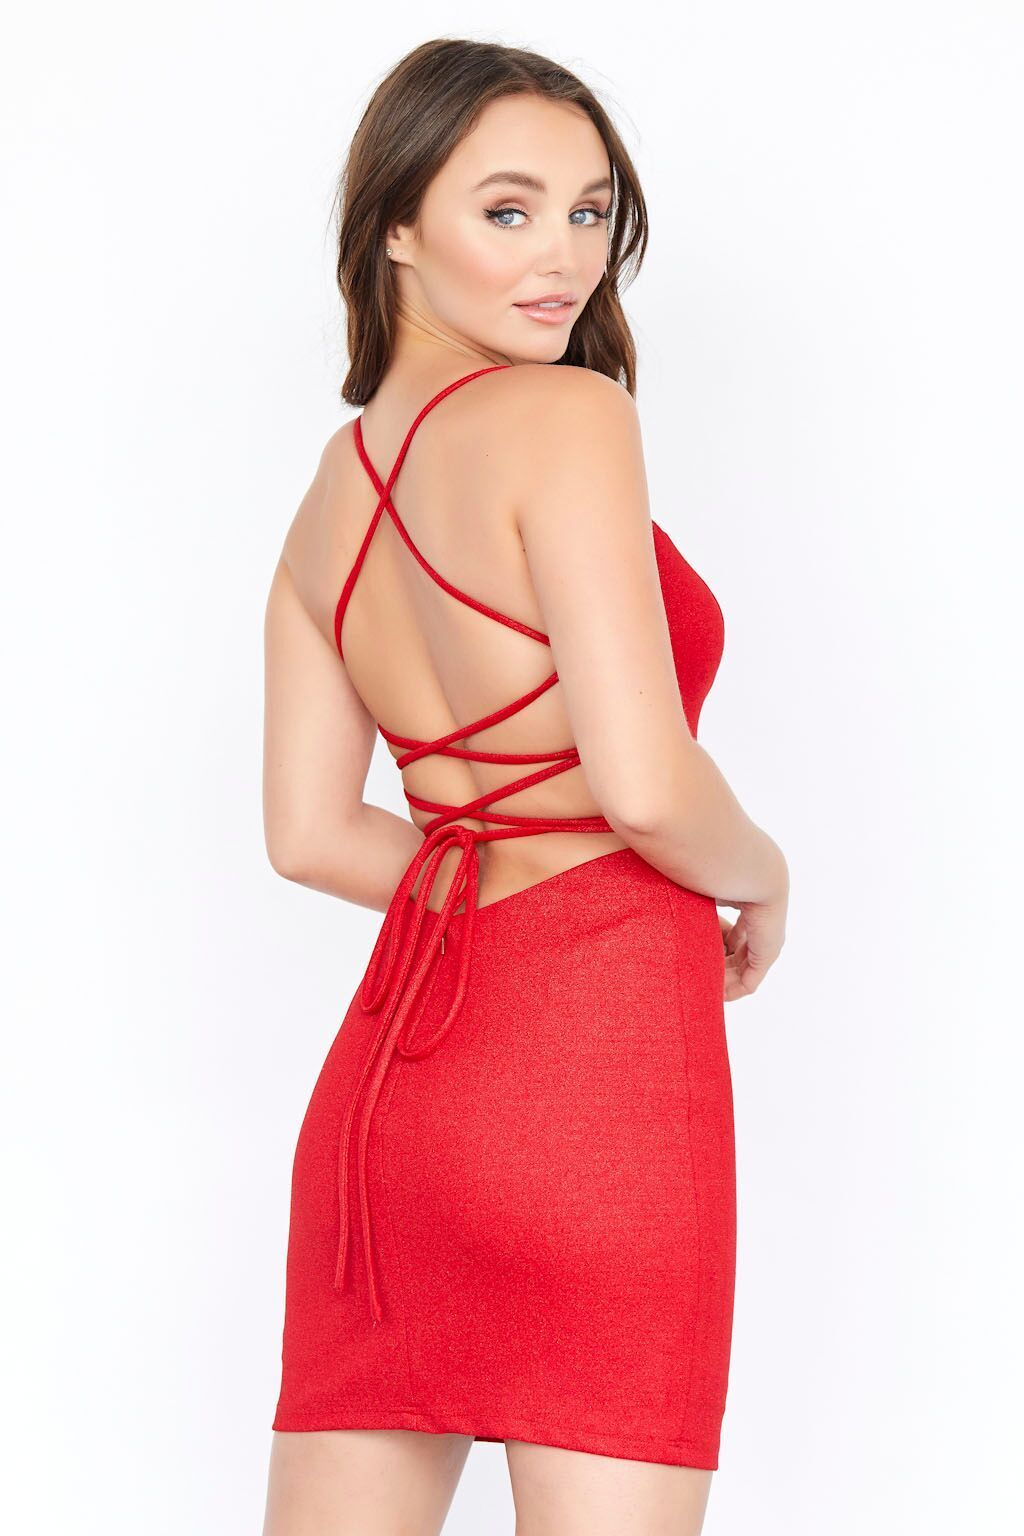 Jolene 19578 short fitted homecoming dress with plunging neckline and sheer mesh panel with an open back and criss cross tie straps in the back.